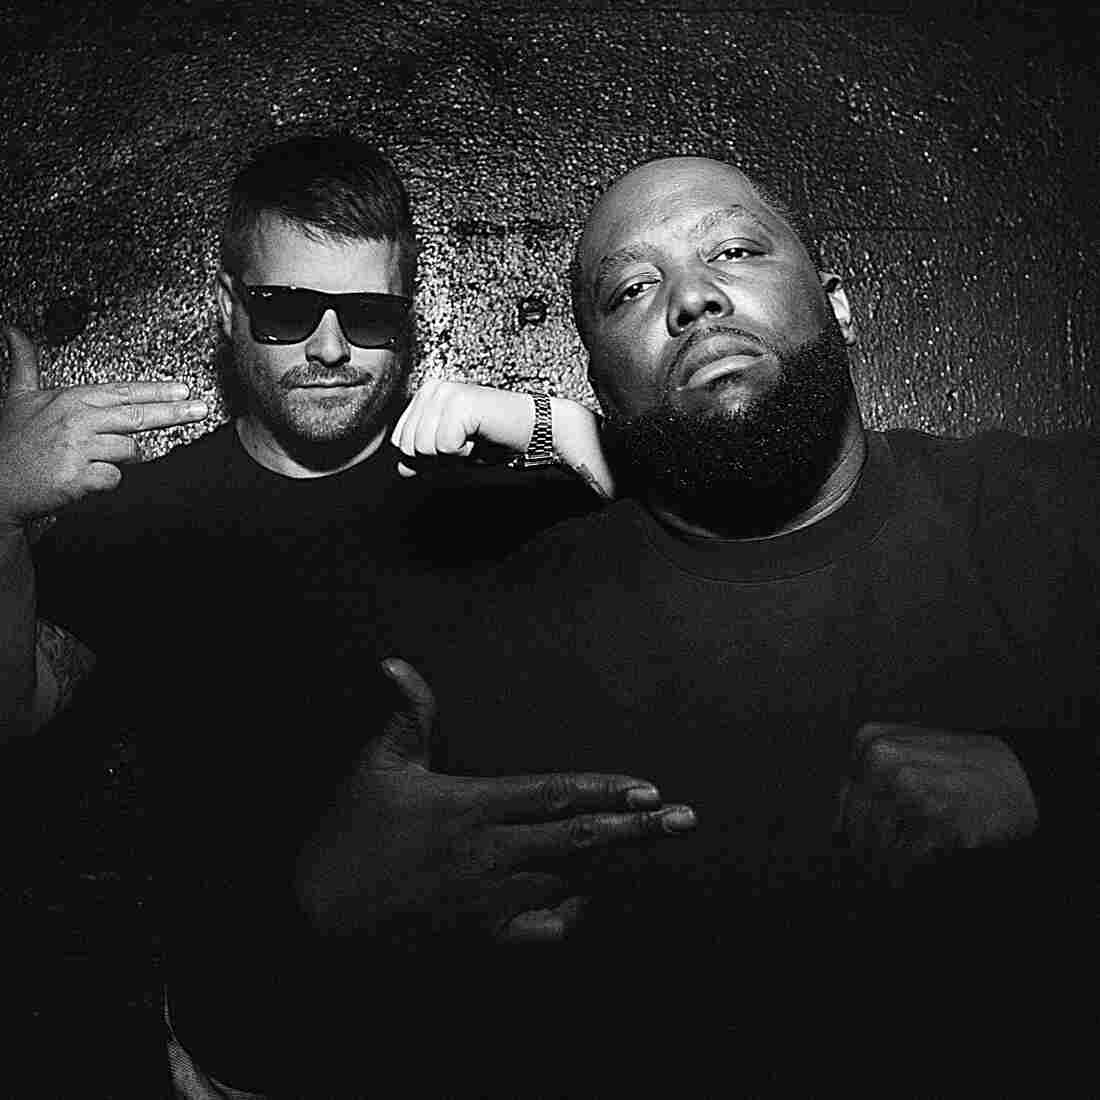 Run The Jewels: 'I'm Taking This Life'